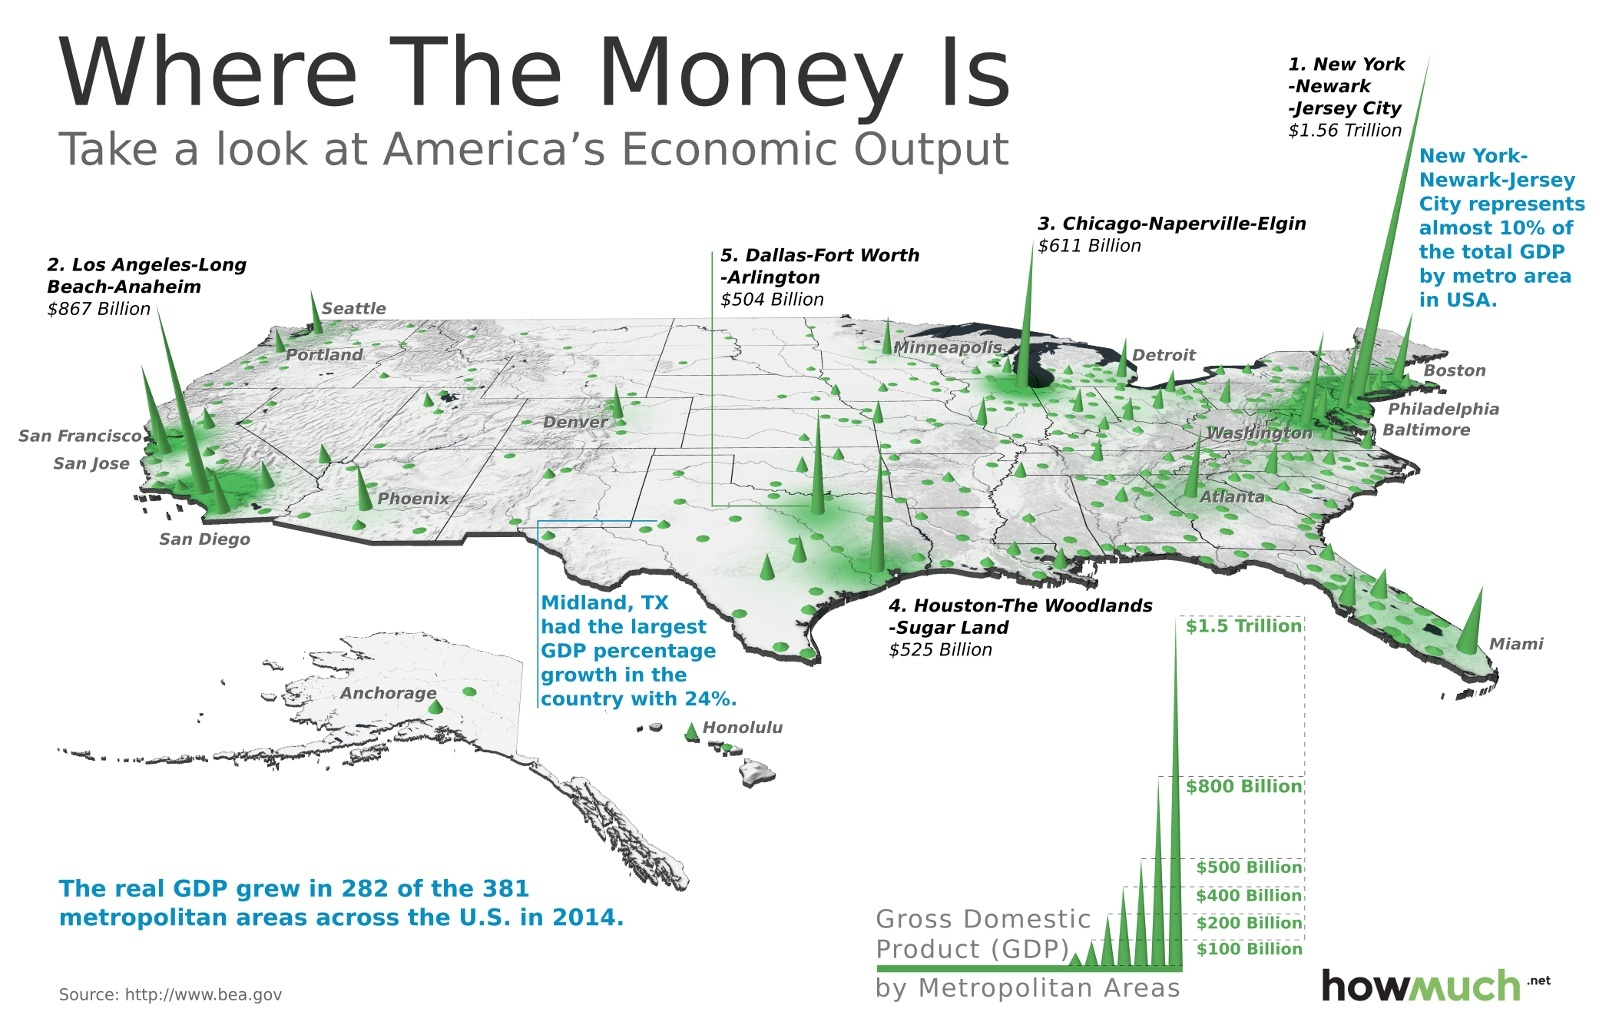 This 3D Map Visualizes the U.S. Economy In a New Way United States Area Map on ghana area map, plains area map, us and canada time zone map, call area map, german area map, seattle university area map, mountaineer country area map, madagascar area map, sand hill area map, southwest area map, uzbekistan area map, panhandle area map, rhode island area map, international area map, west tennessee area map, india area map, north america area map, qatar area map, sonoran desert area map, kurdistan area map,